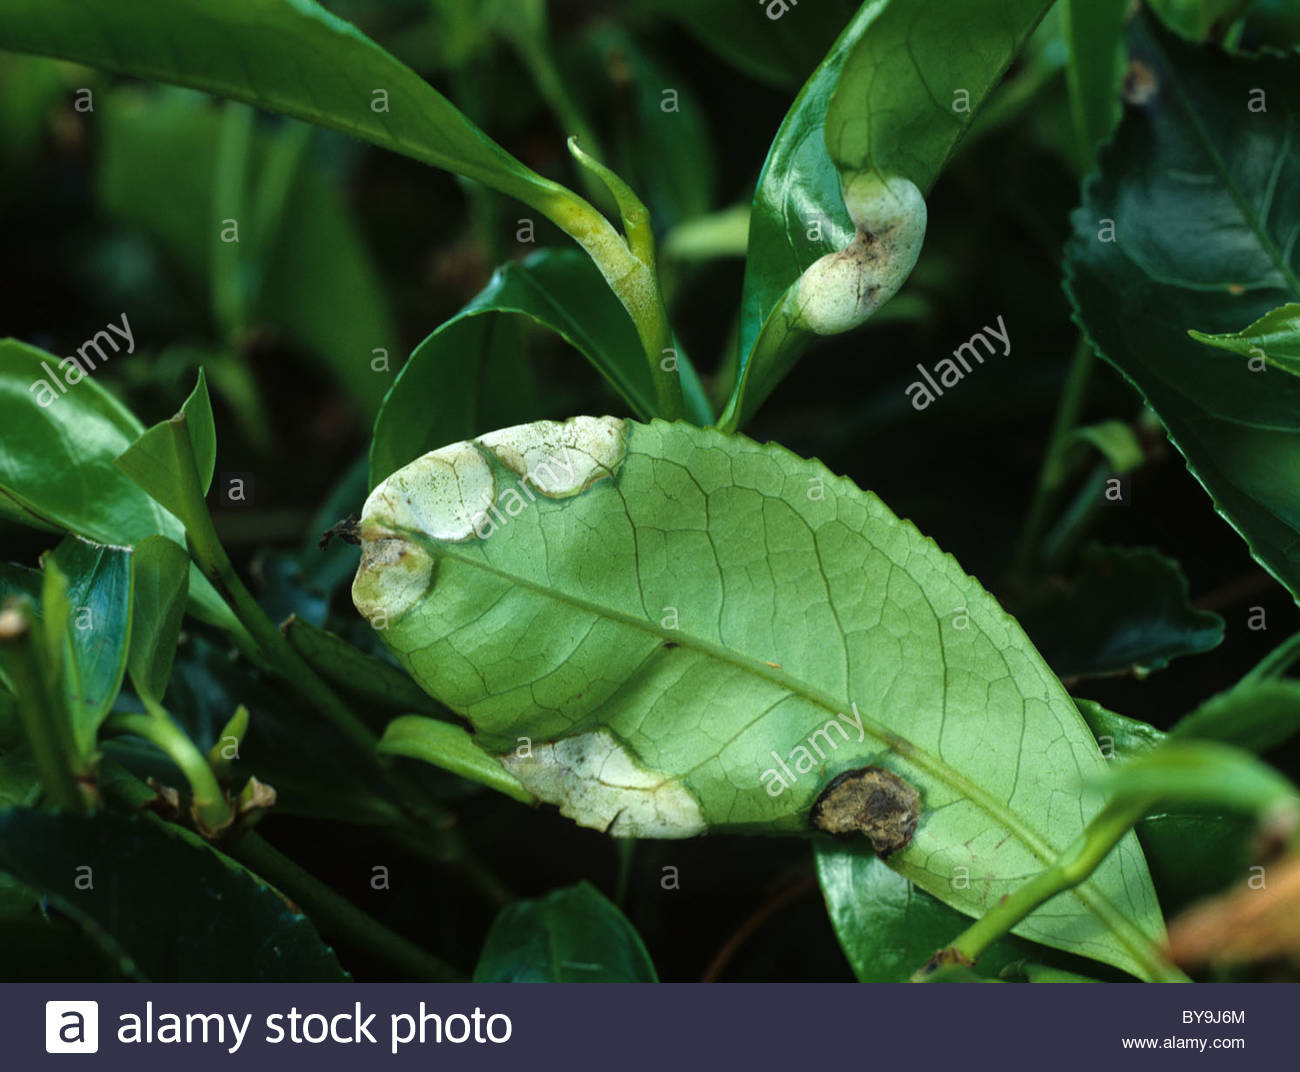 Blister blight (Exobasidium vexans) blisters on tea leaves - Stock Image